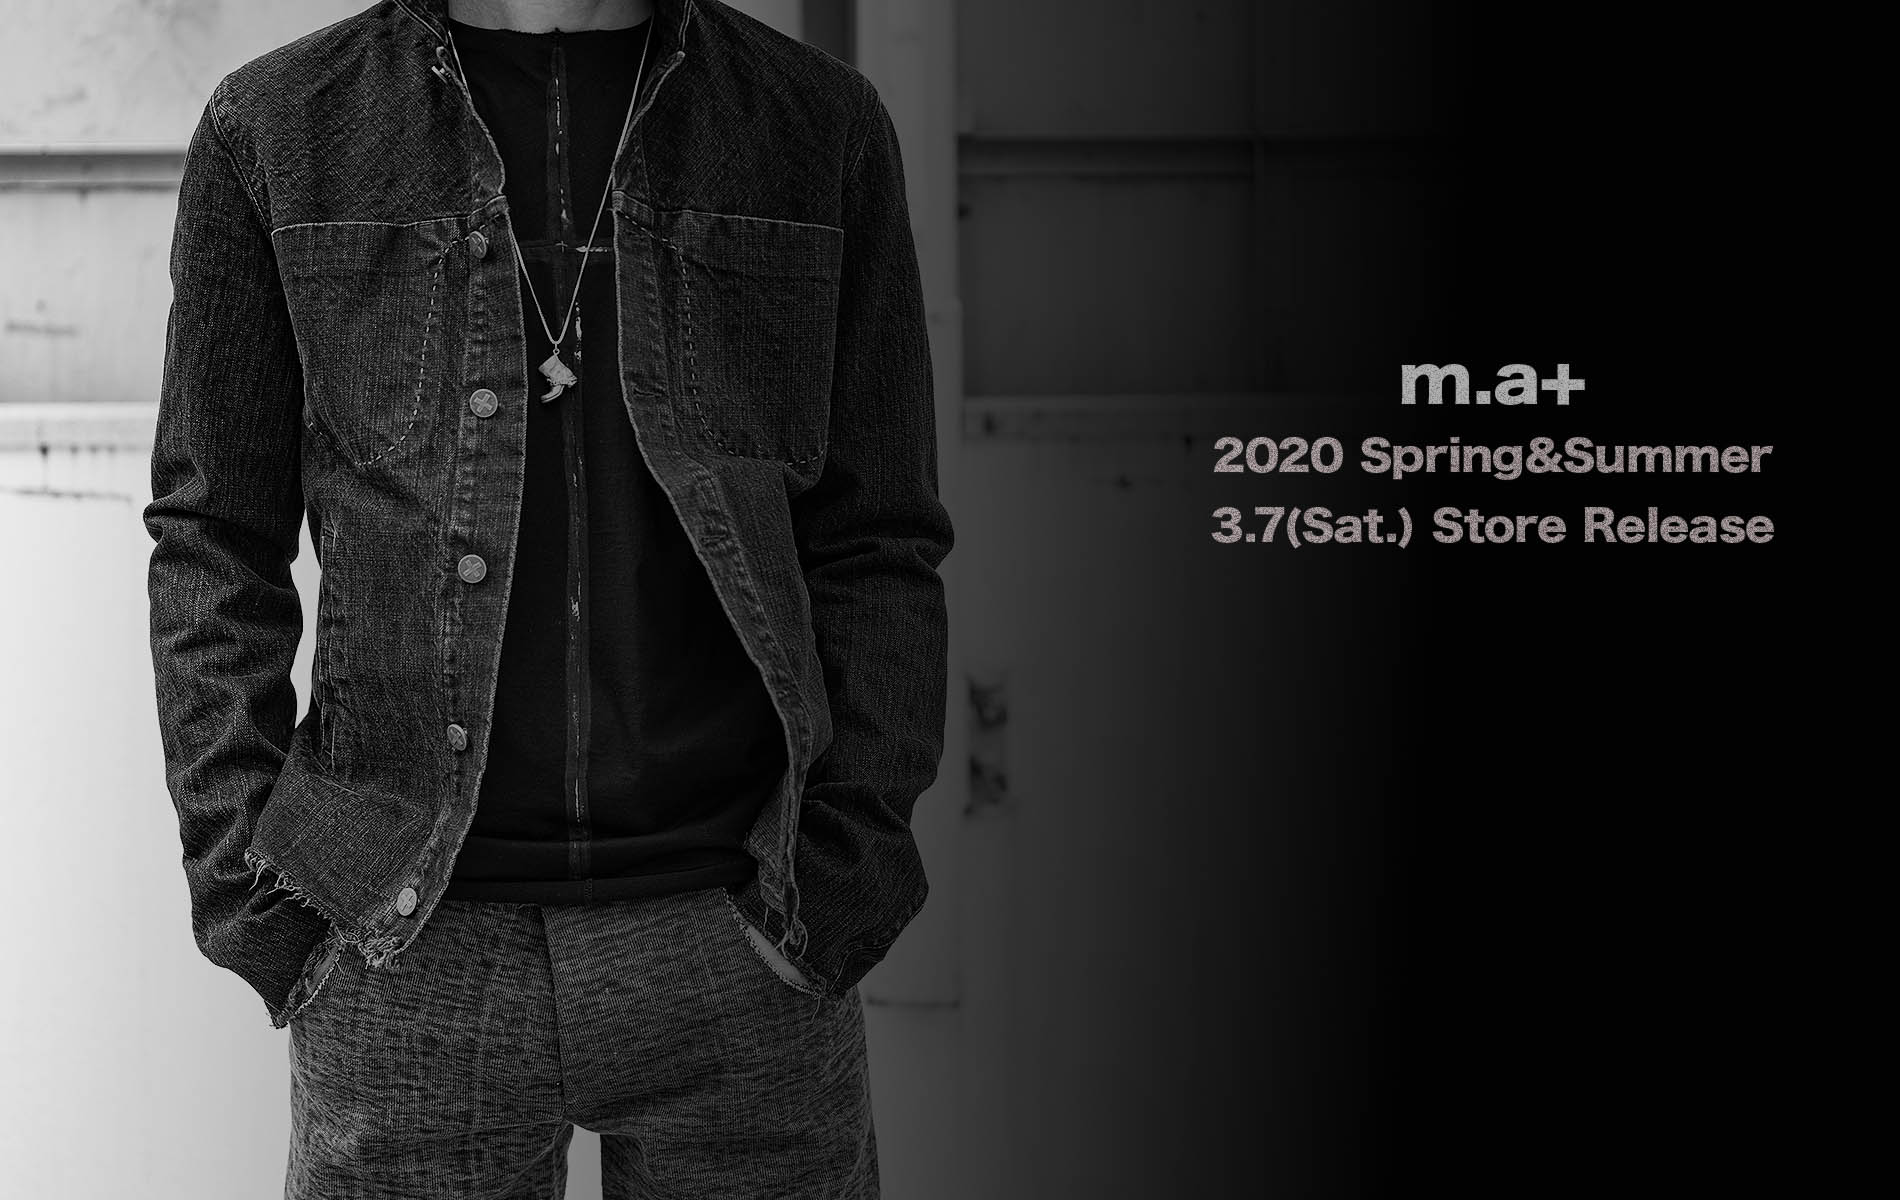 m.a+  spring&summer 2020 3.7 store release.